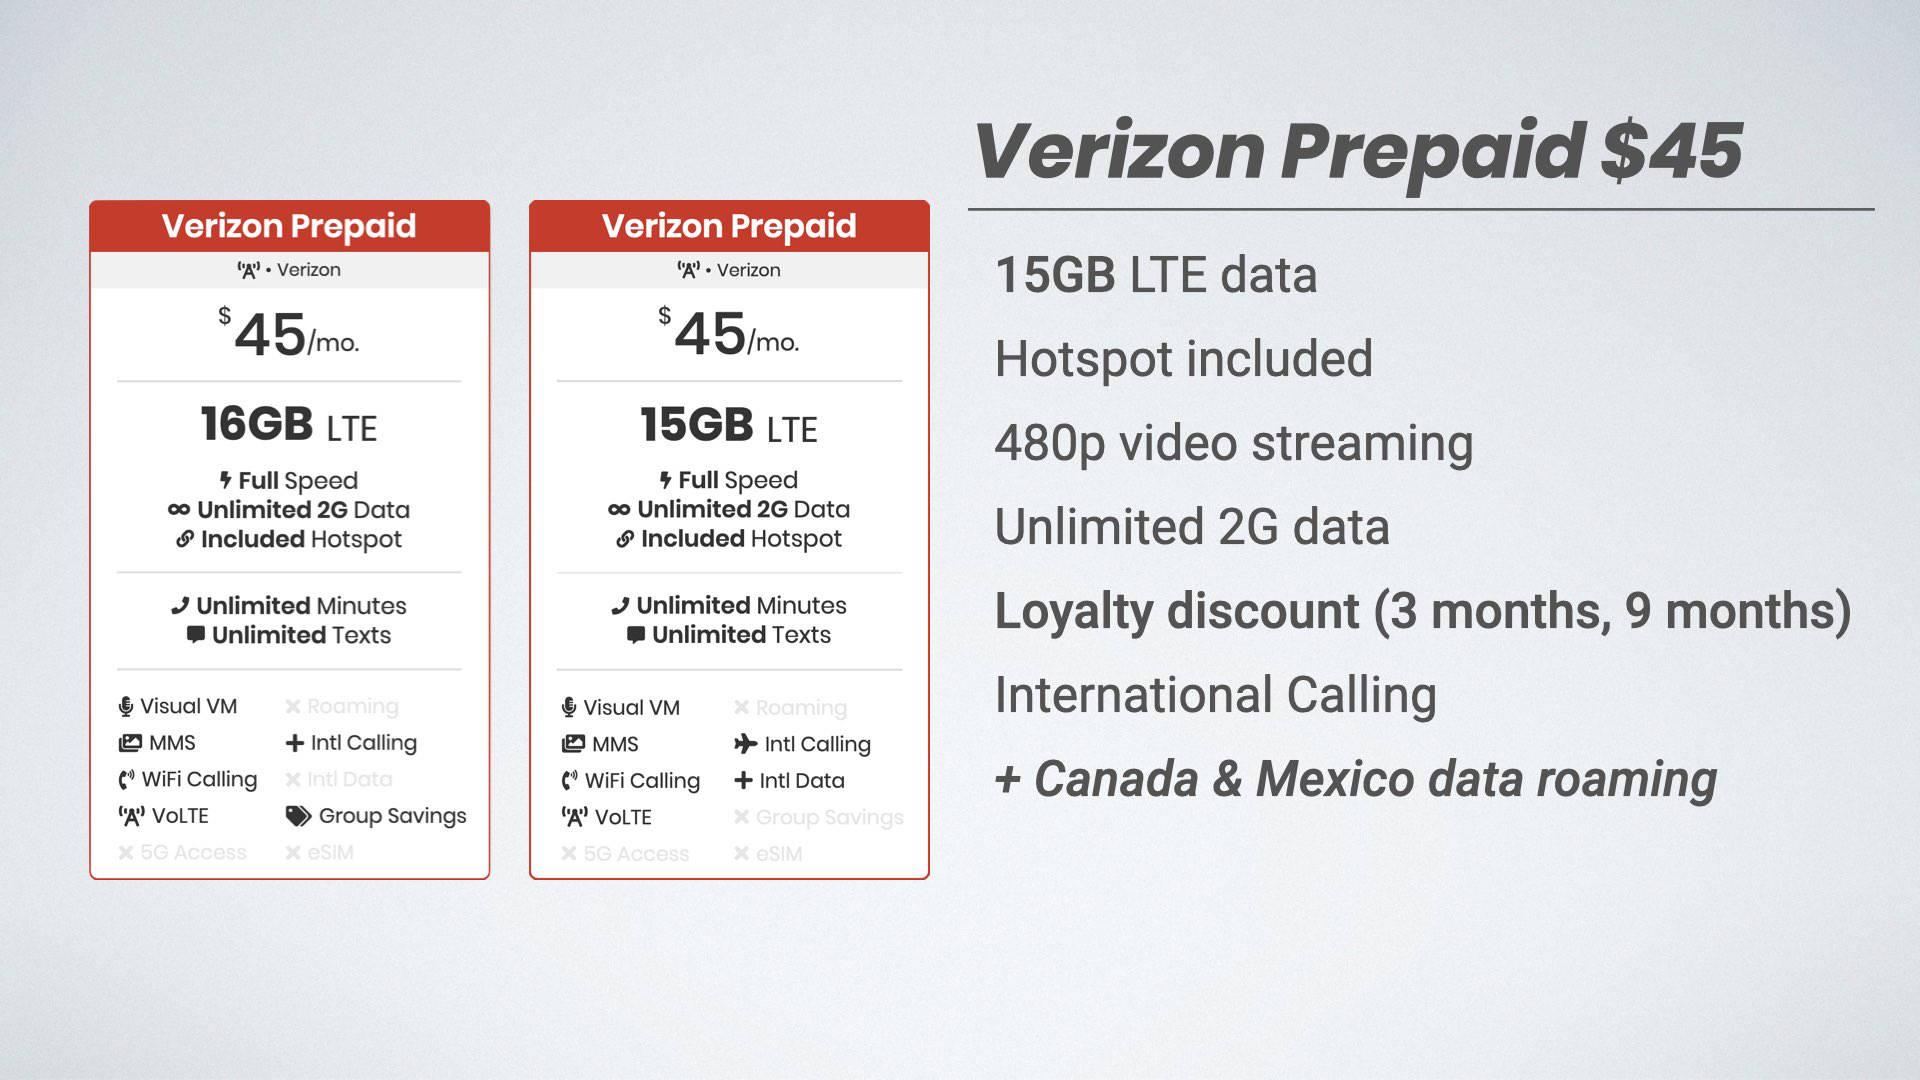 Verizon's $45 prepaid plan comparison